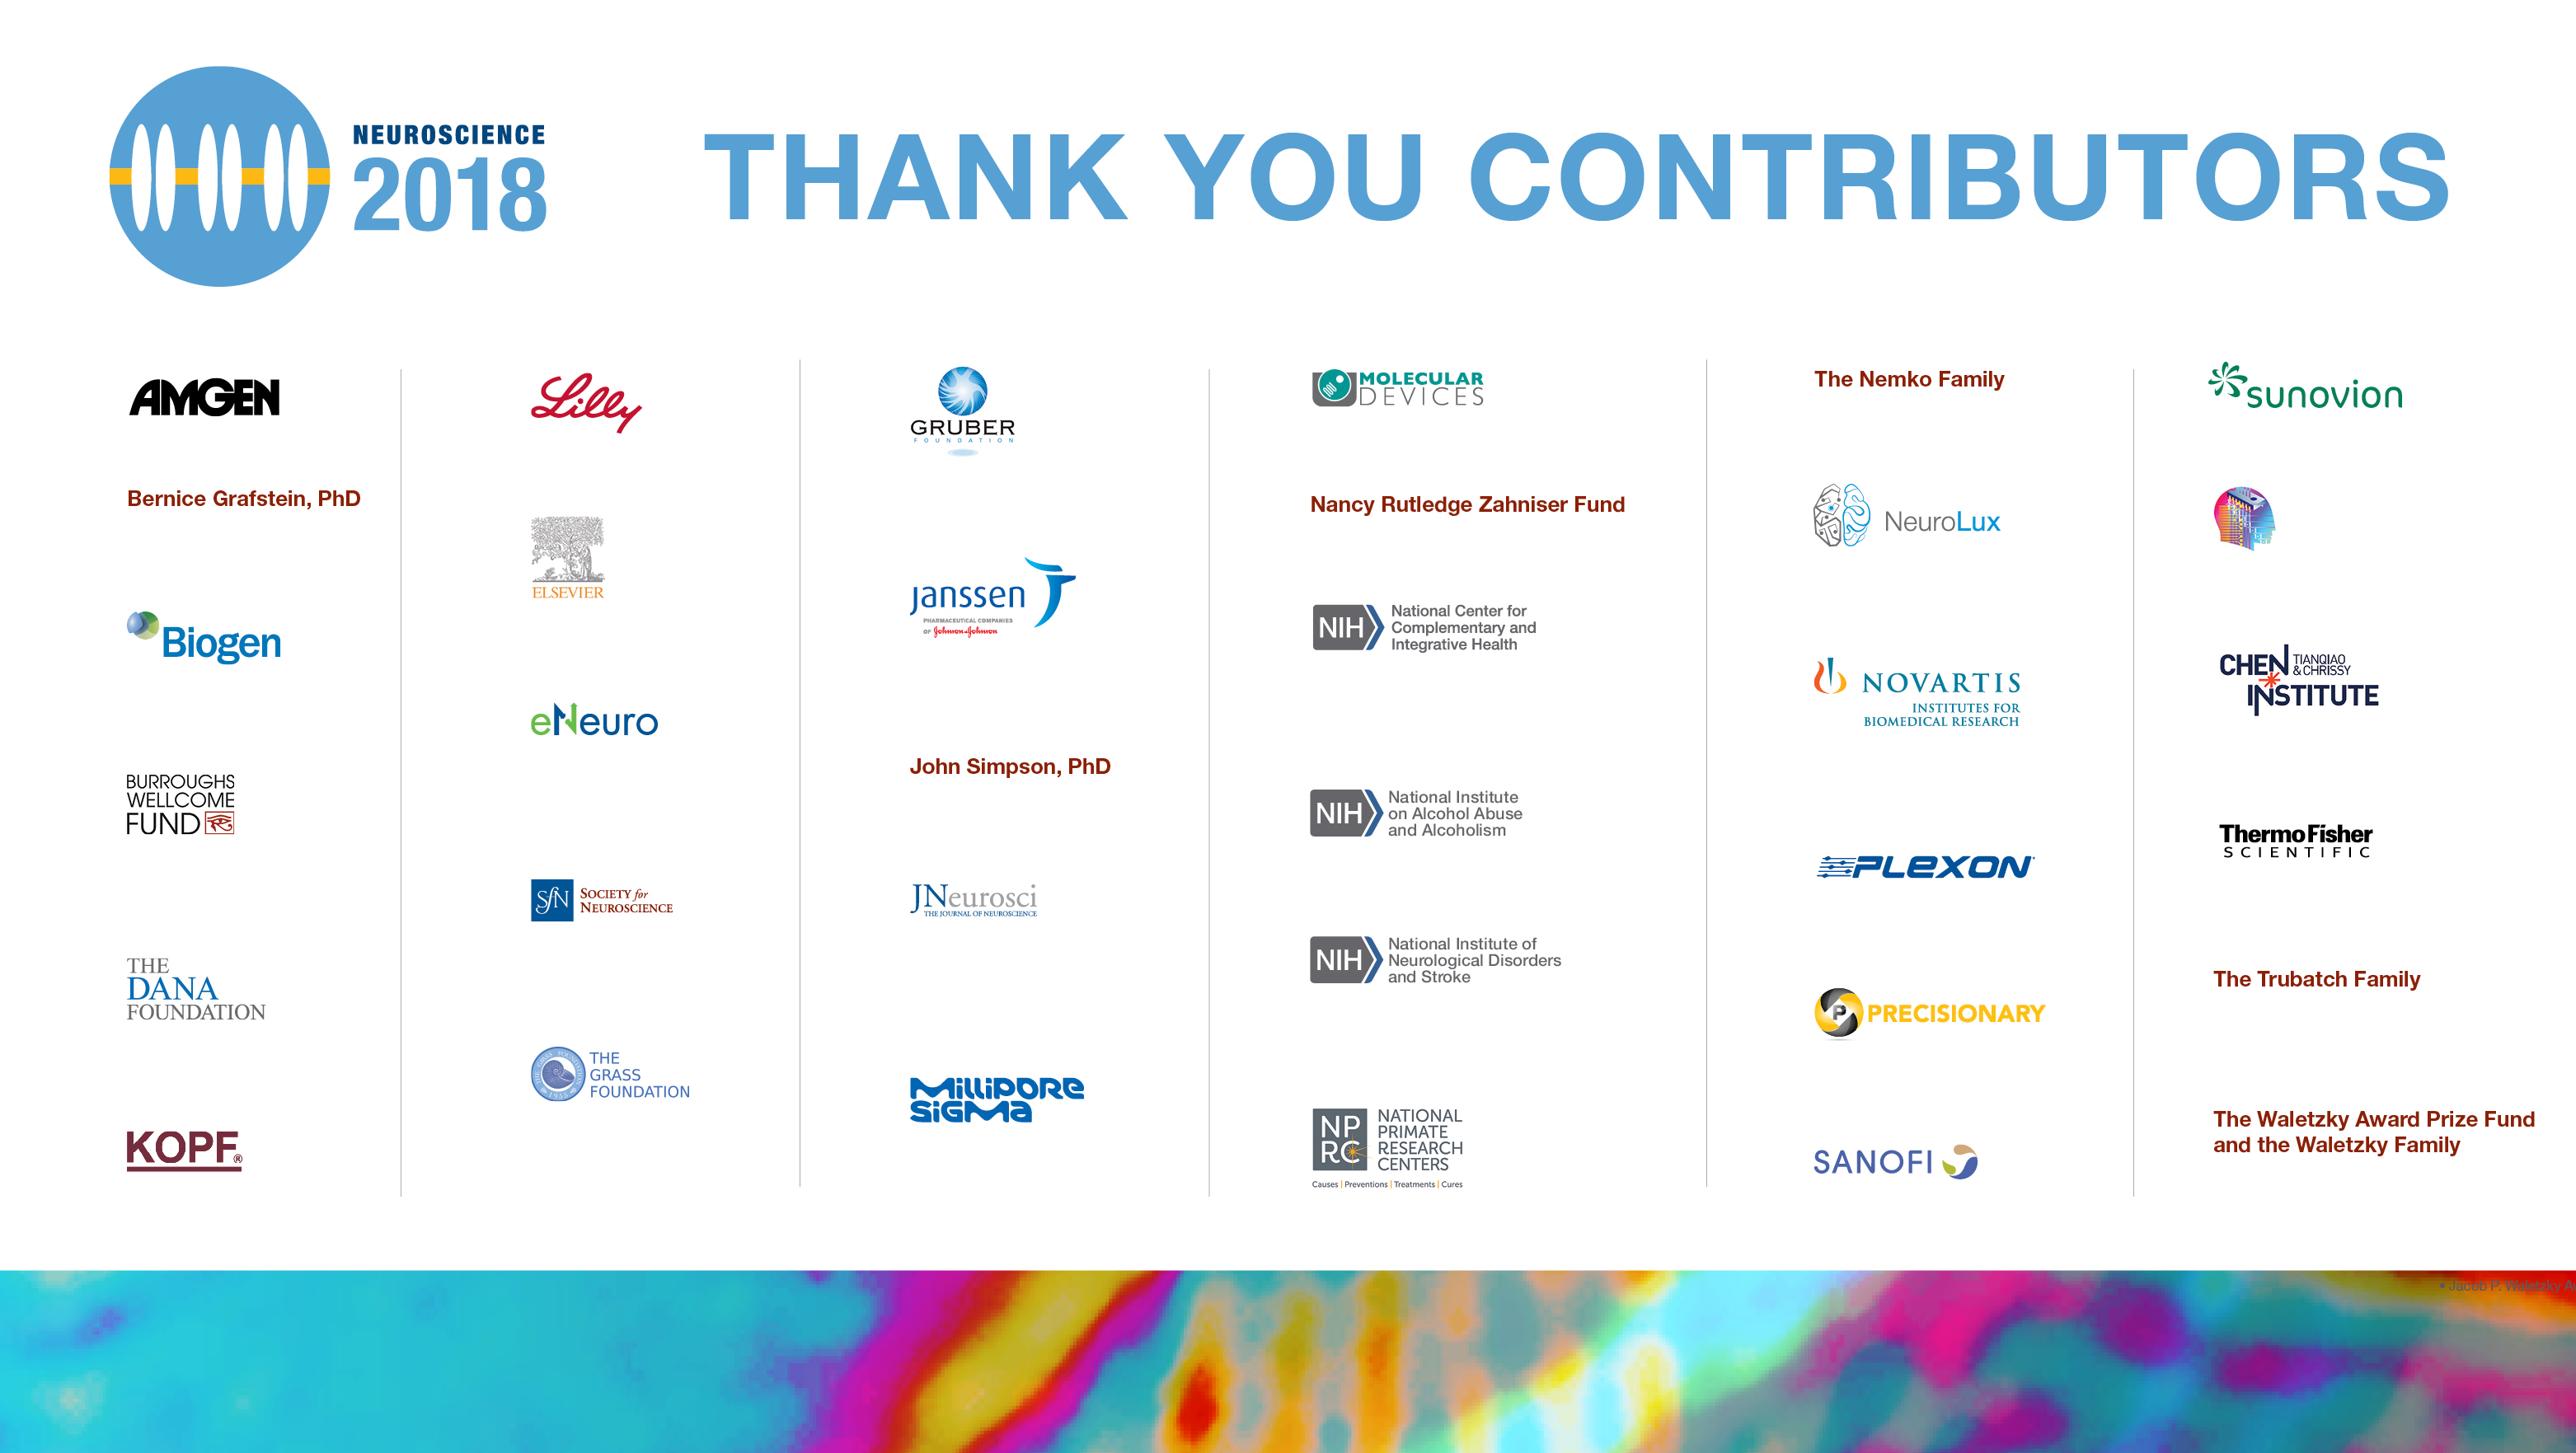 The Neuroscience 2018 contributor logos.